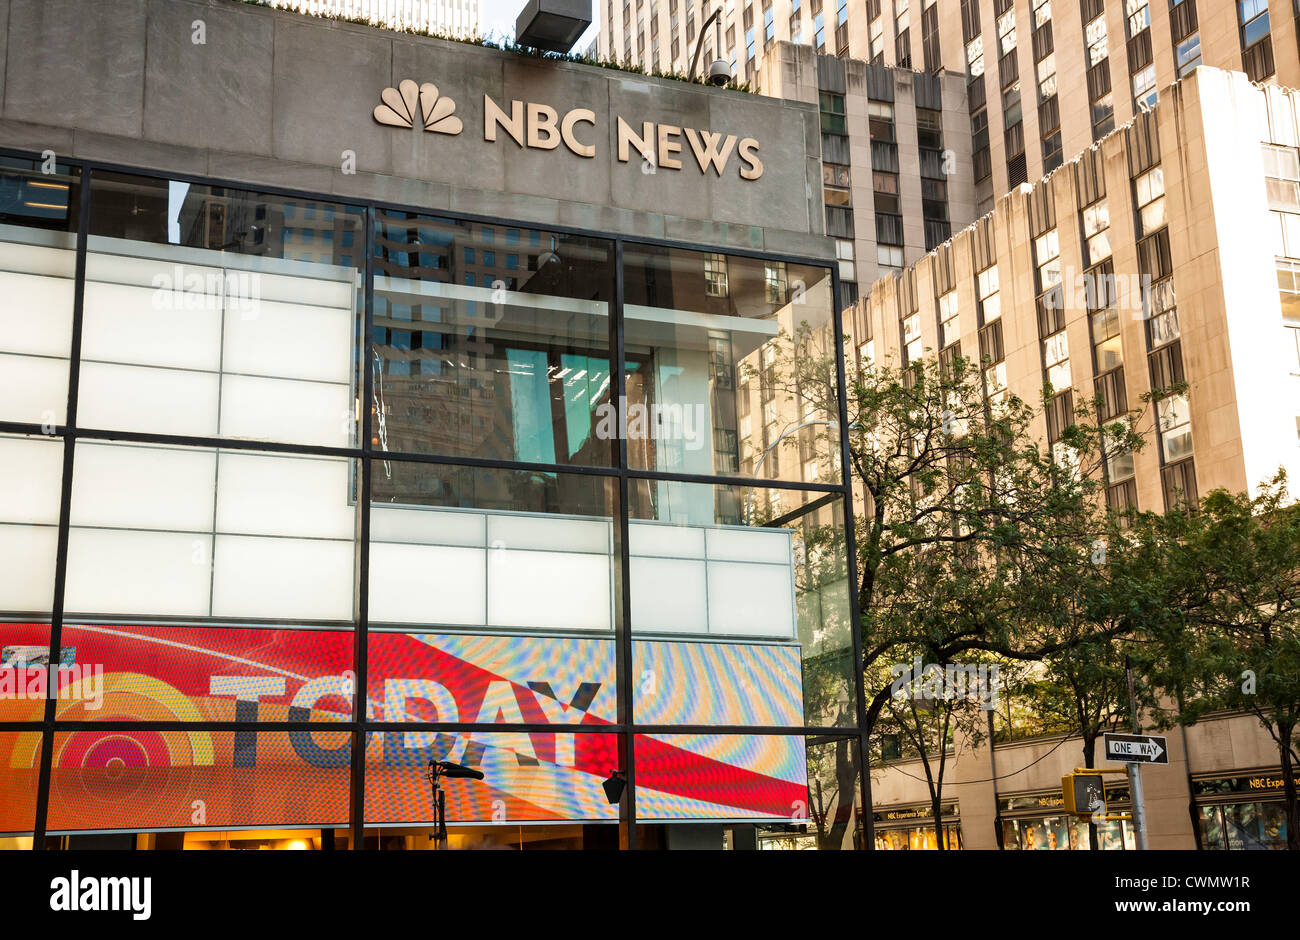 NBC Today Show Studio featuring new graphics - Stock Image